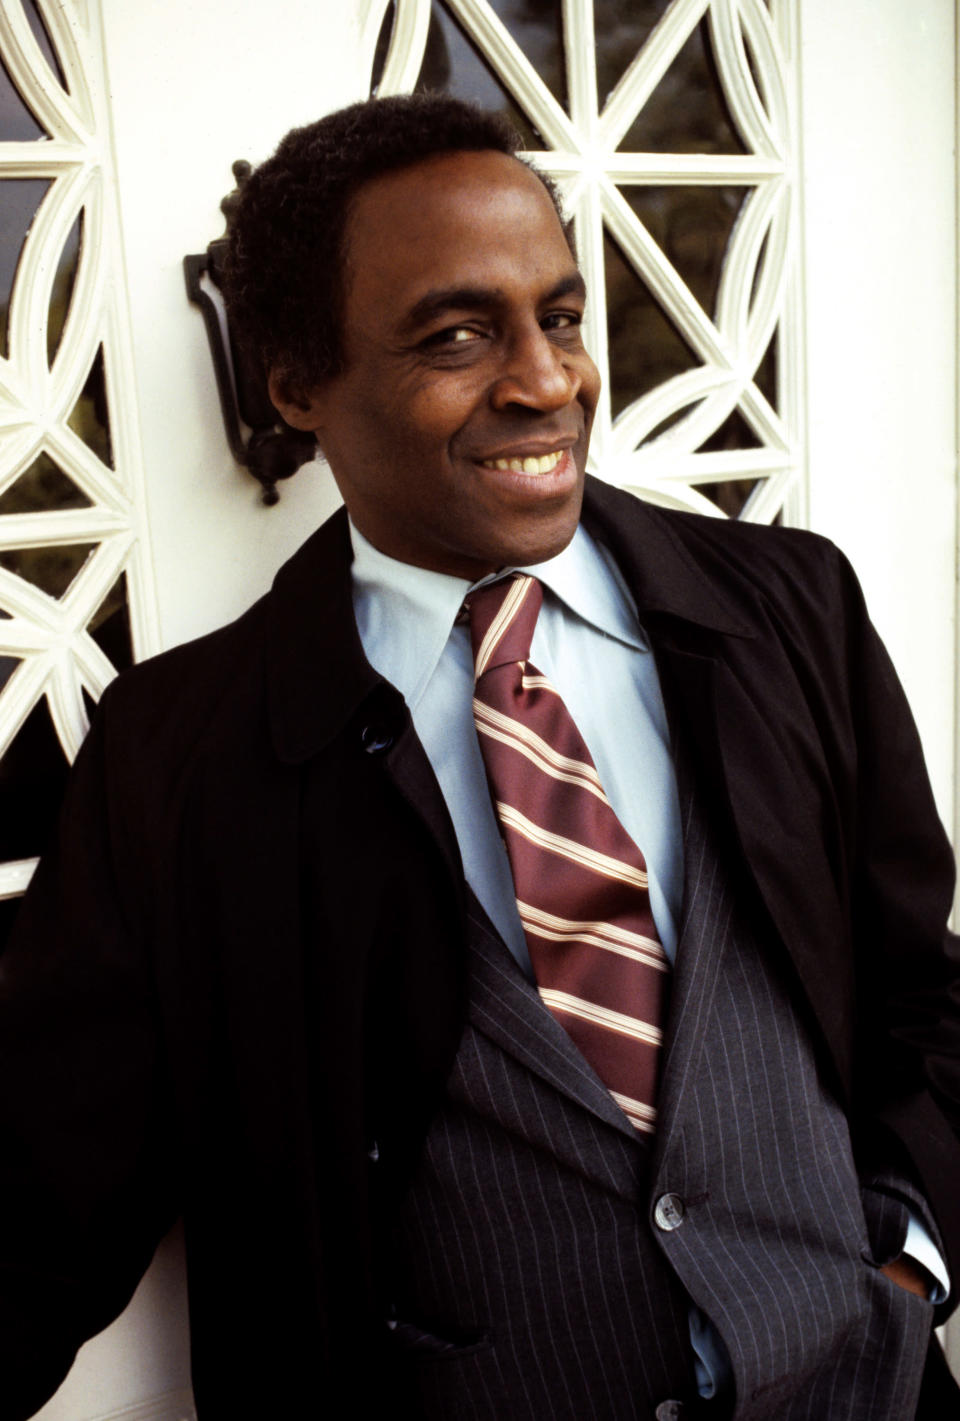 """<p>The Emmy Award-winning actor <a rel=""""nofollow"""" href=""""https://www.yahoo.com/entertainment/robert-guillaume-benson-emmy-winner-eies-89-201940792.html"""" data-ylk=""""slk:died Oct. 24;outcm:mb_qualified_link;_E:mb_qualified_link;ct:story;"""" class=""""link rapid-noclick-resp yahoo-link"""">died Oct. 24</a> following a struggle with prostate cancer. He was best known for playing Benson on the TV series <em>Soap</em> and its spinoff, <em>Benson</em>, as well as being the voice of Rafiki in <em>The Lion King</em>. Guillaume was 89. (Photo: Getty Images) </p>"""